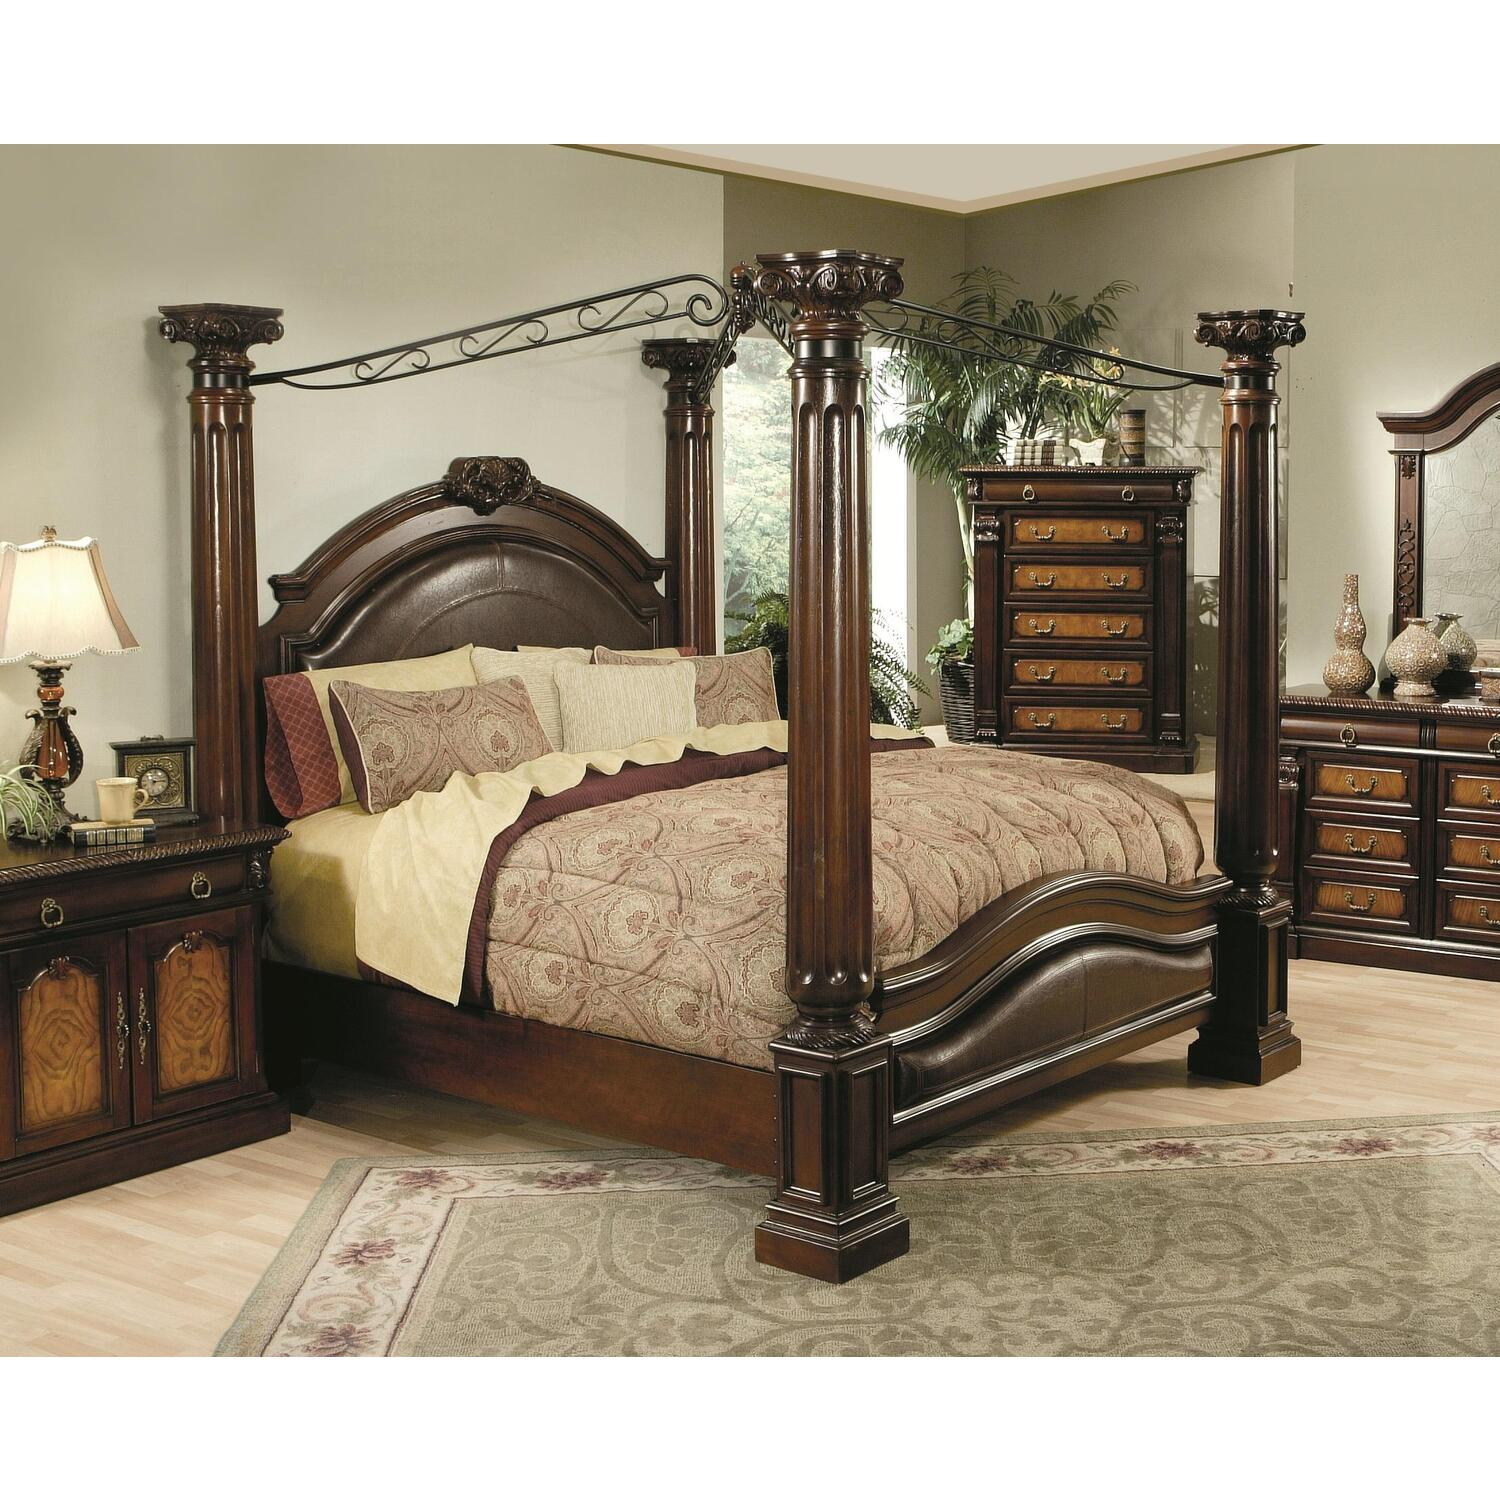 hollywood home montecito canopy bed by oj commerce 1 978